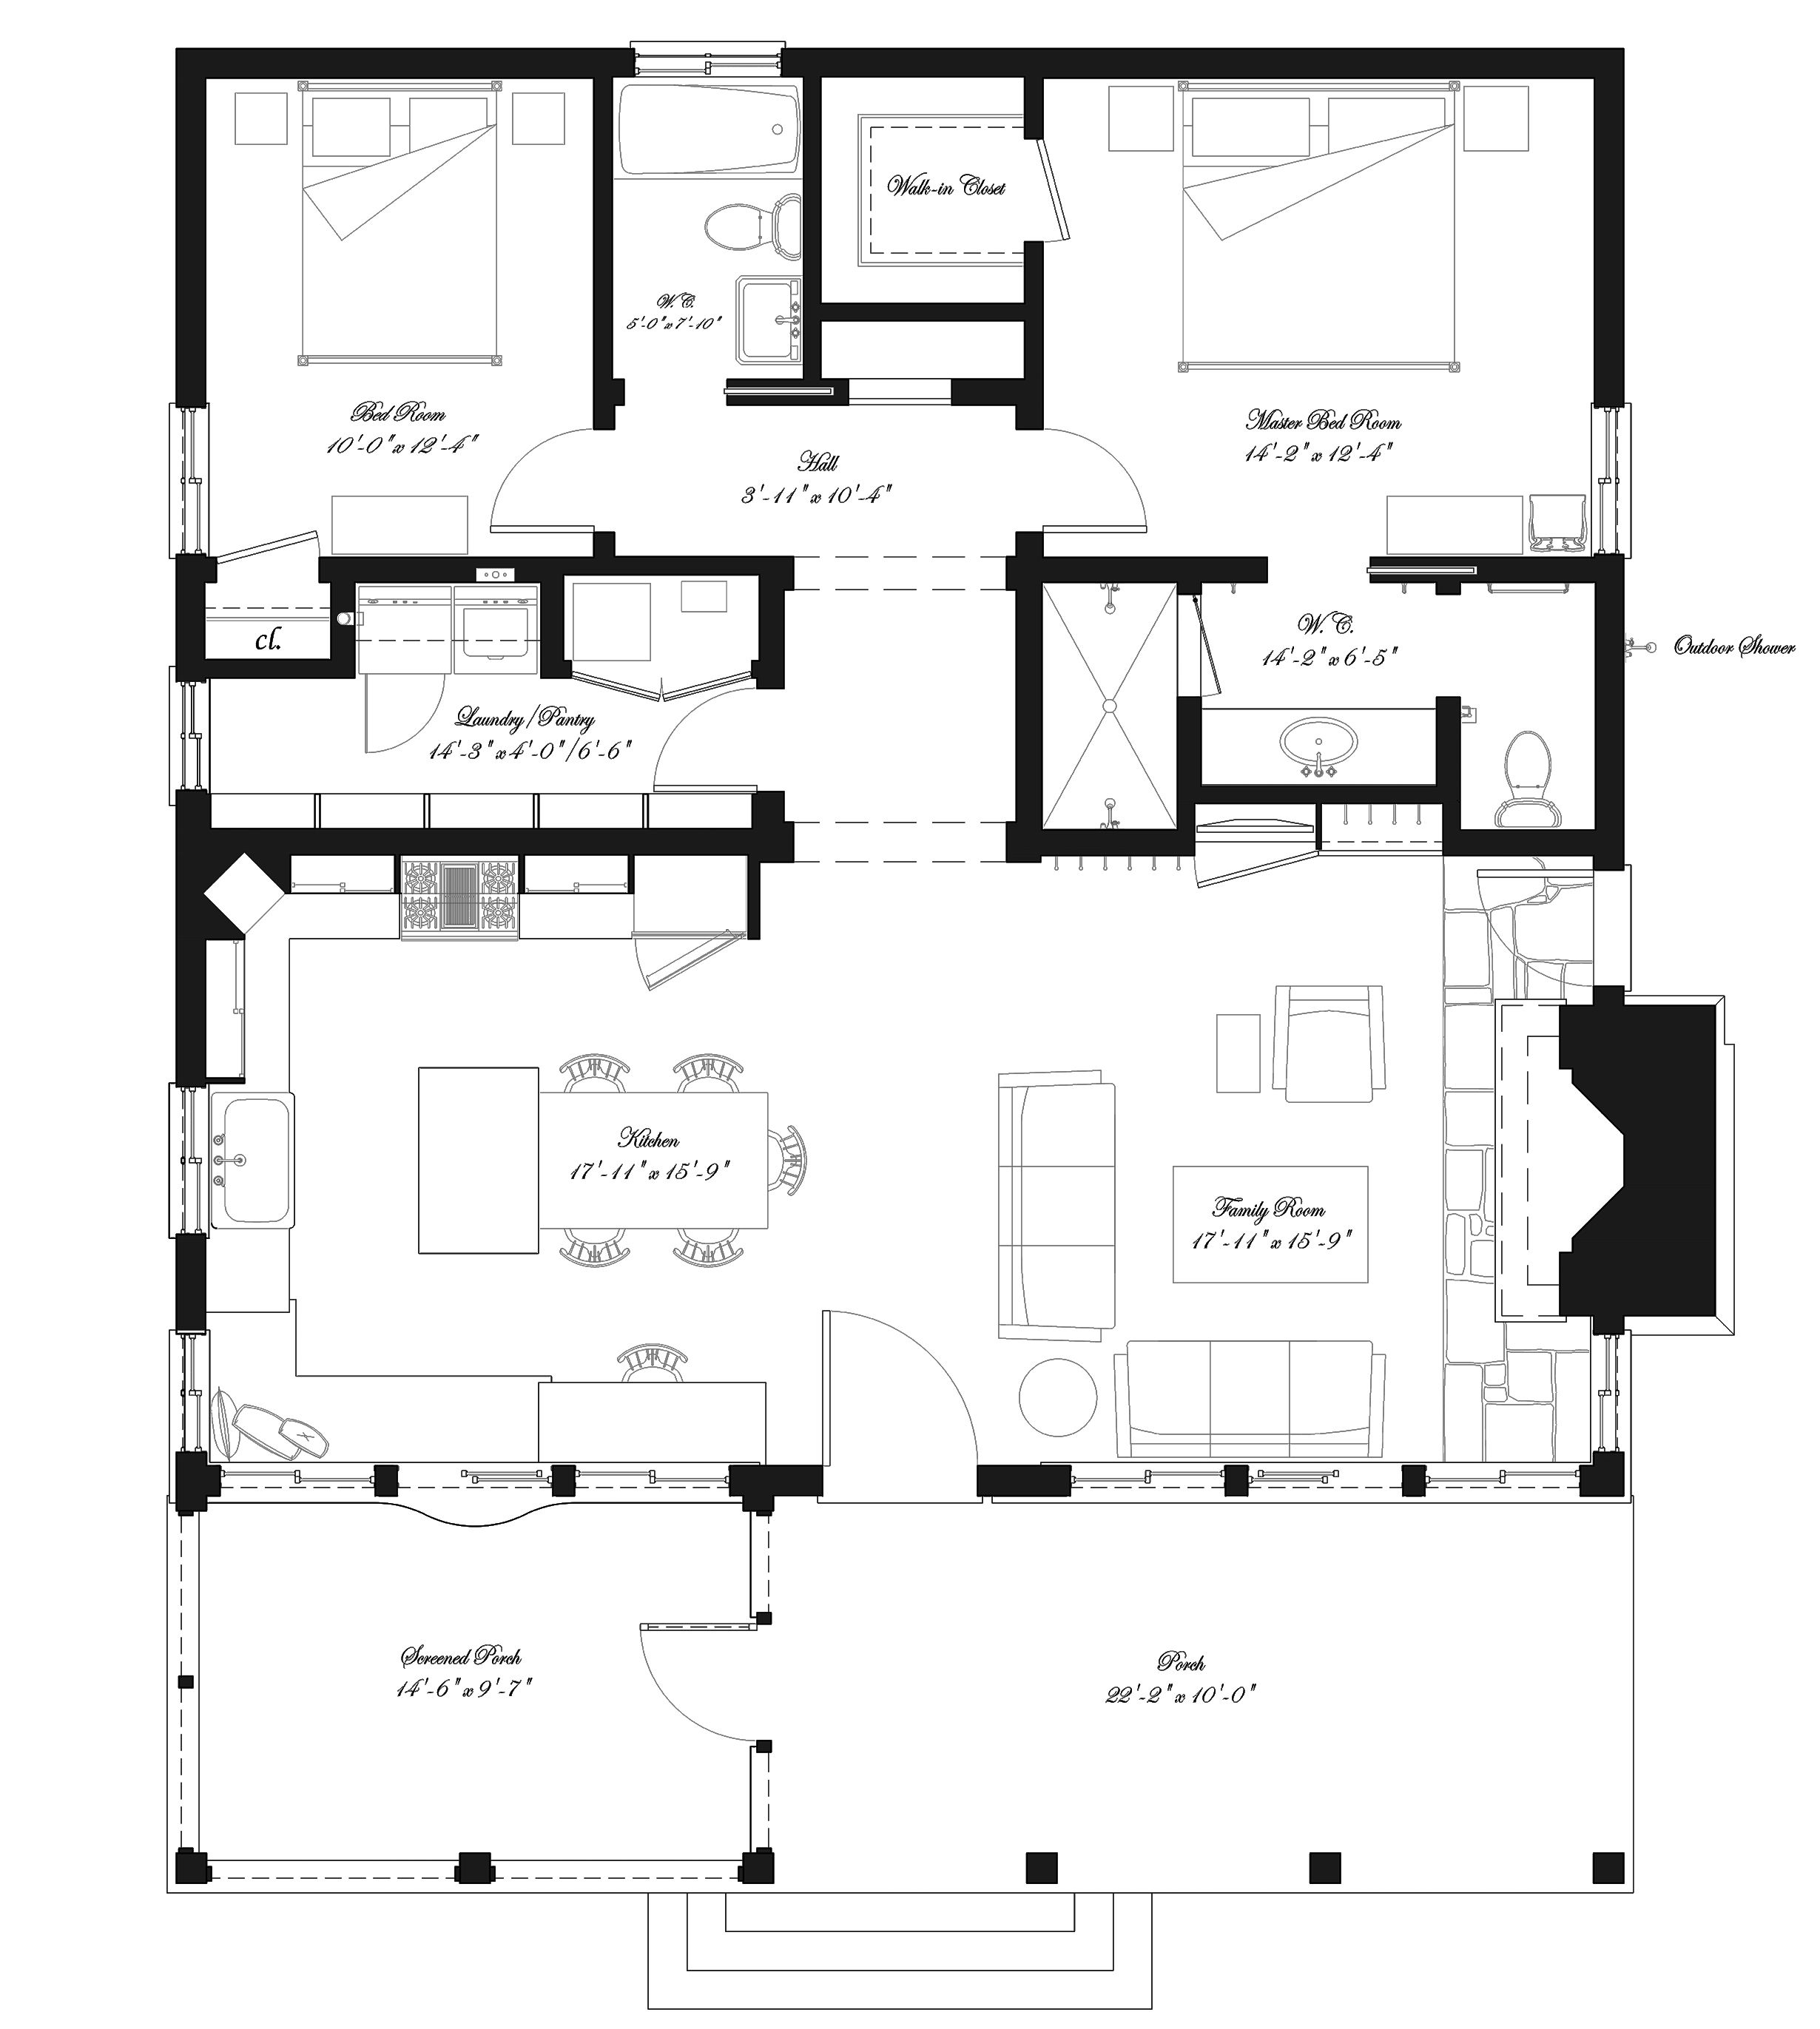 Modern Farmhouse plan 888 13 ArchitectNicholasLee www